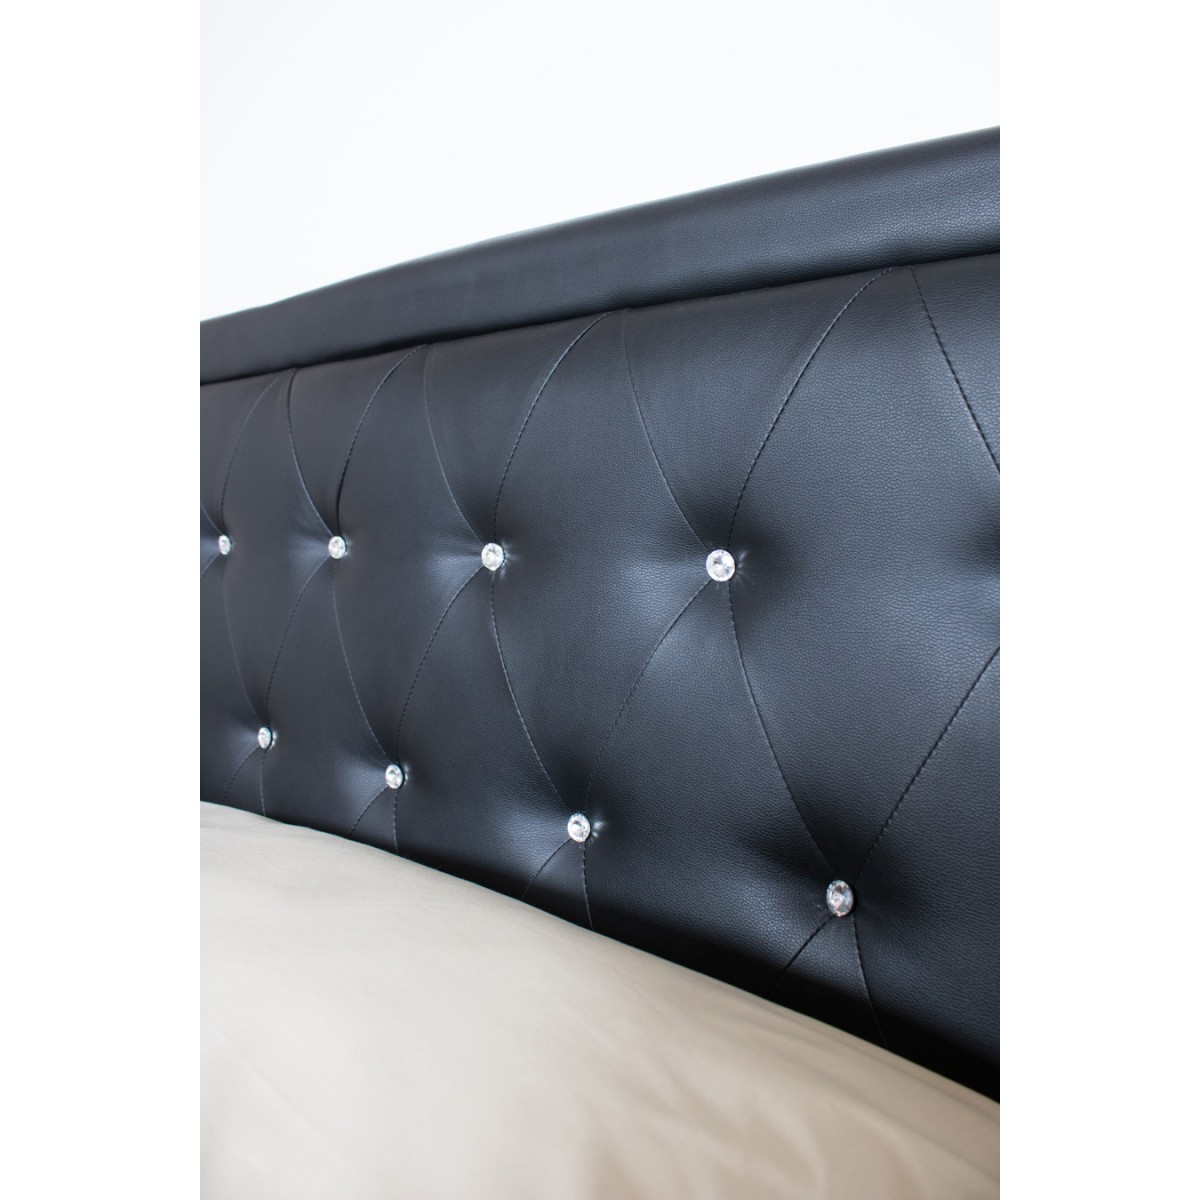 https://www.collyshop.it/media/catalog/product/cache/1/image/1200x1200/9df78eab33525d08d6e5fb8d27136e95/l/e/letto-william-testiera-nero2.jpg